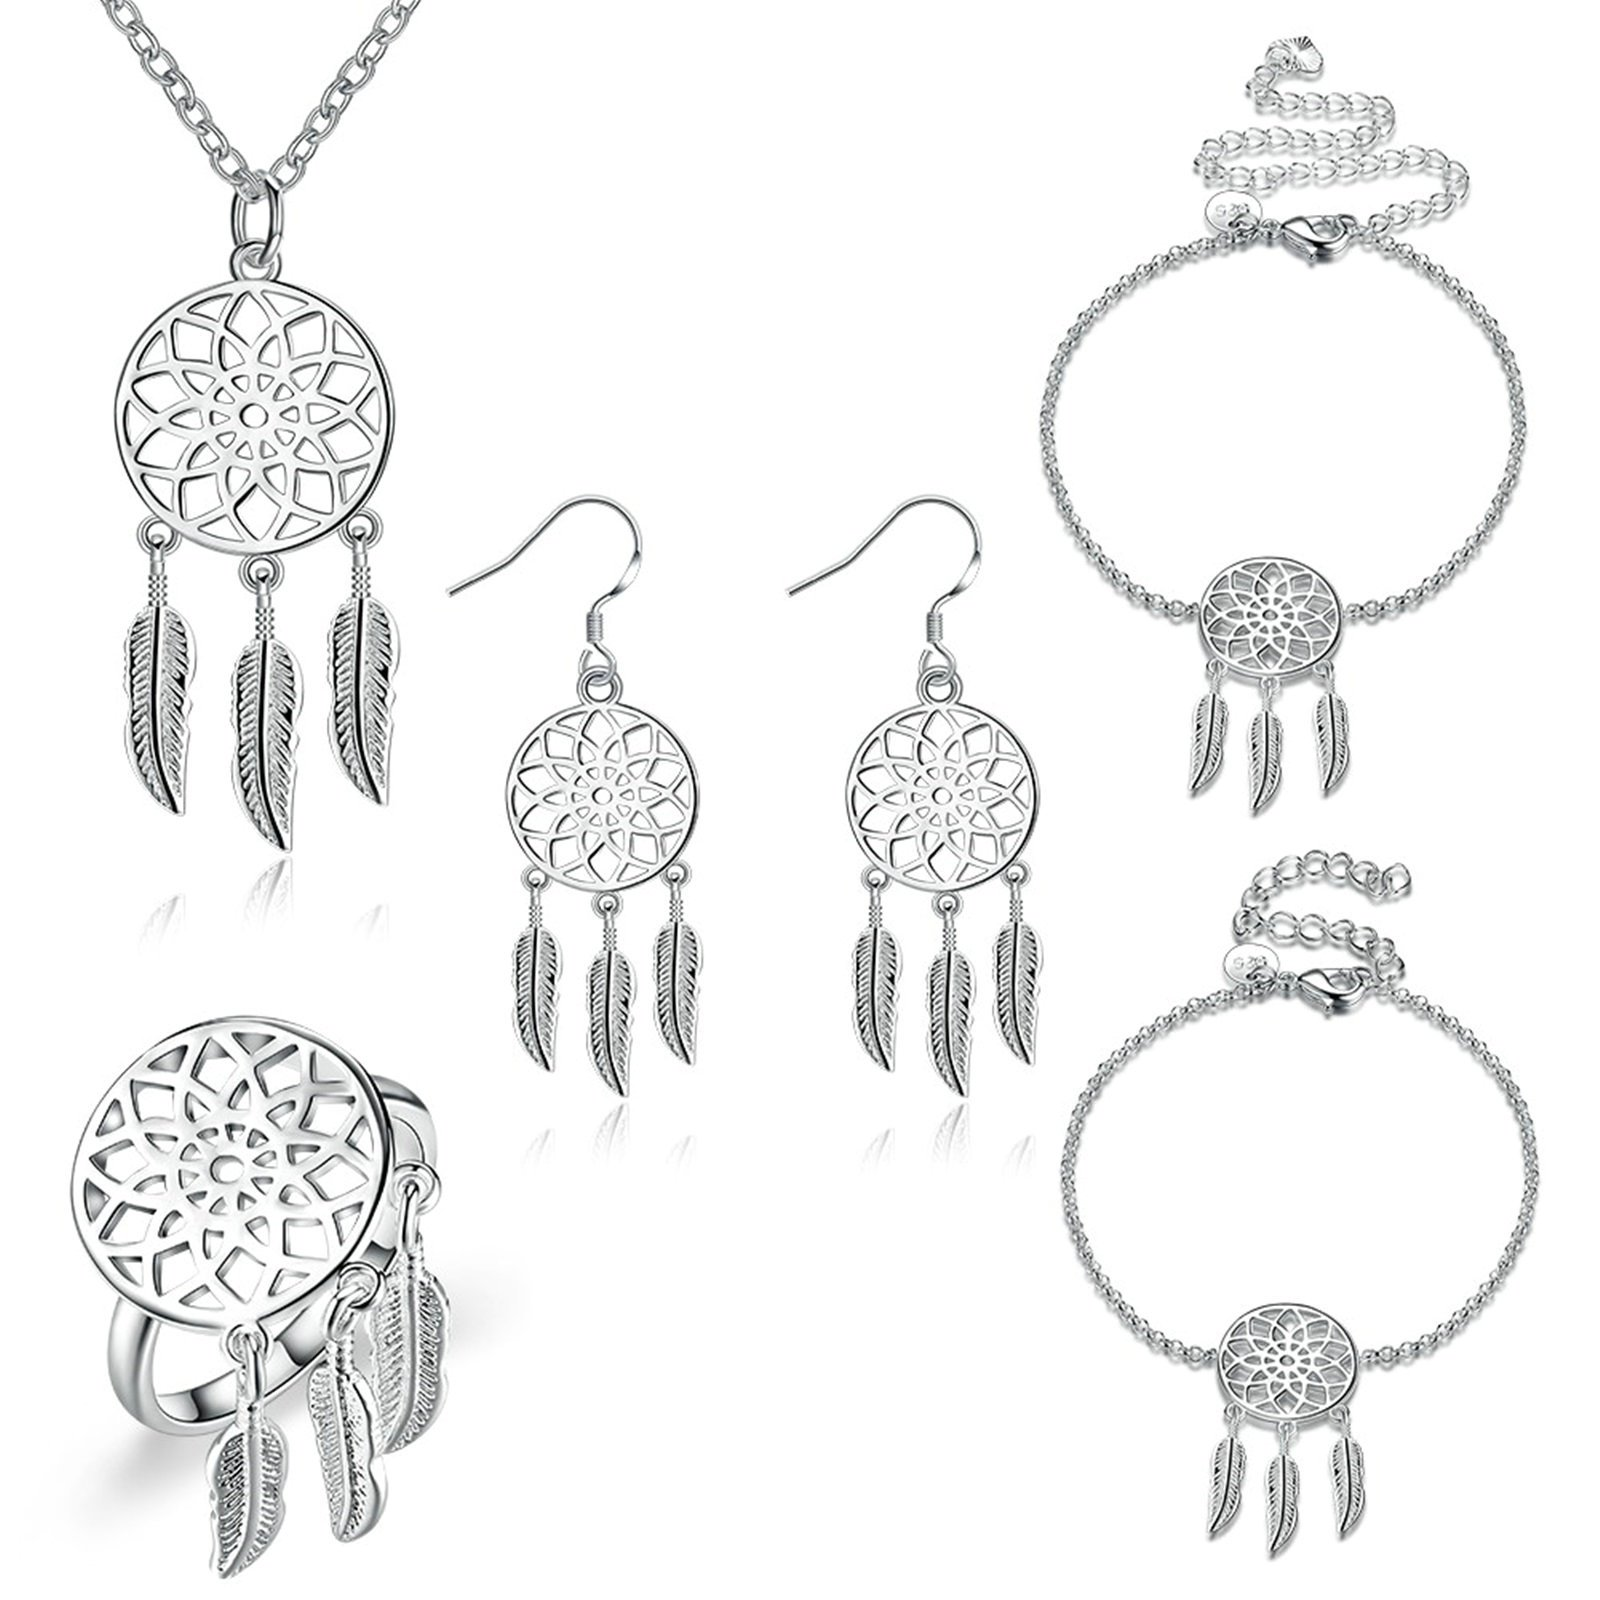 MoAndy Jewelry Set Ring Bracelet Anklet Earrings Necklace For Women Hollow Feather Silver